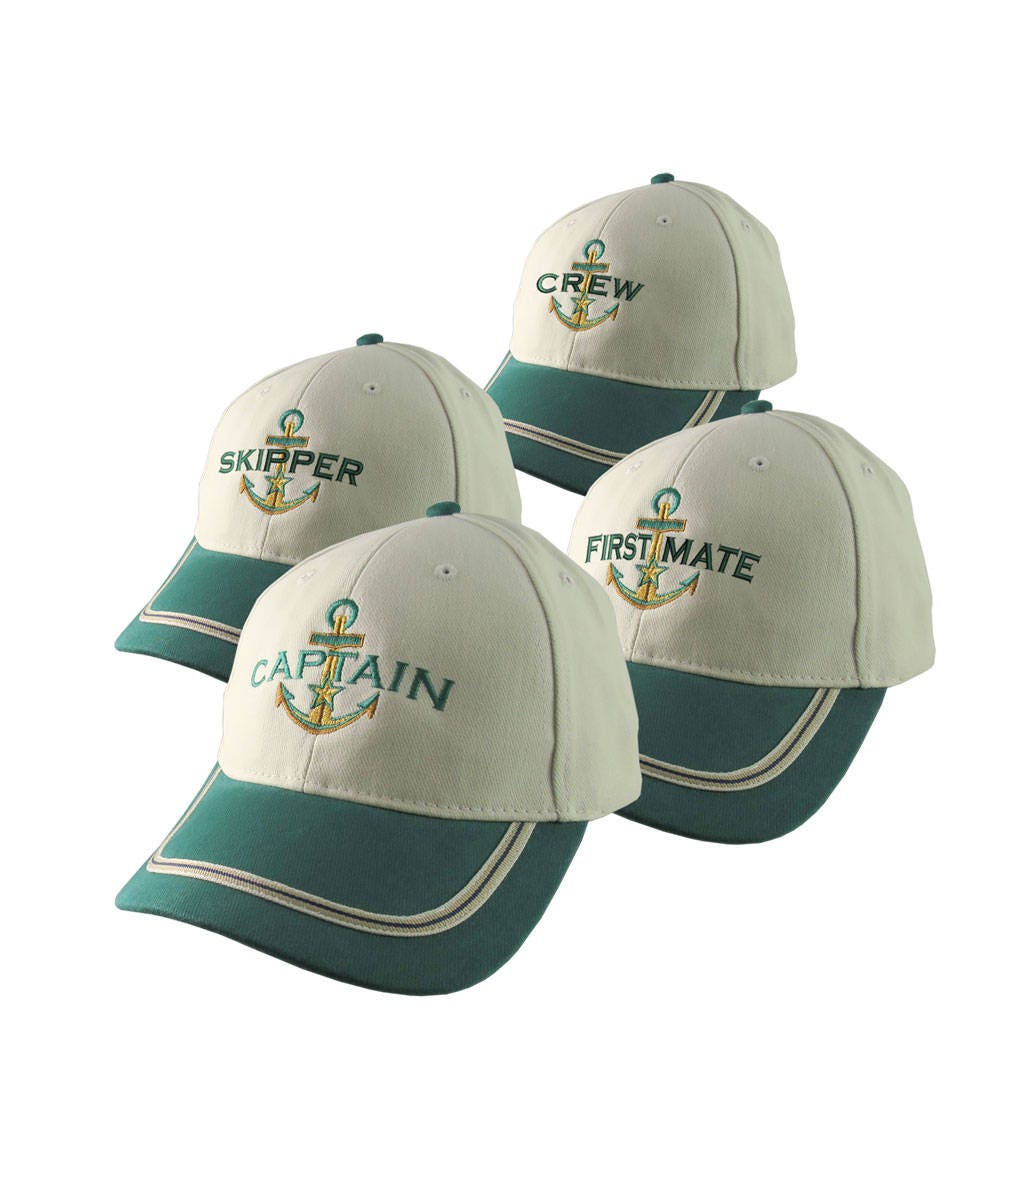 fcea1ad209301 Nautical Star Anchor Captain and Crew Embroidery Adjustable Emerald Green  and Beige Structured Baseball Cap Options to Personalize Boat Name